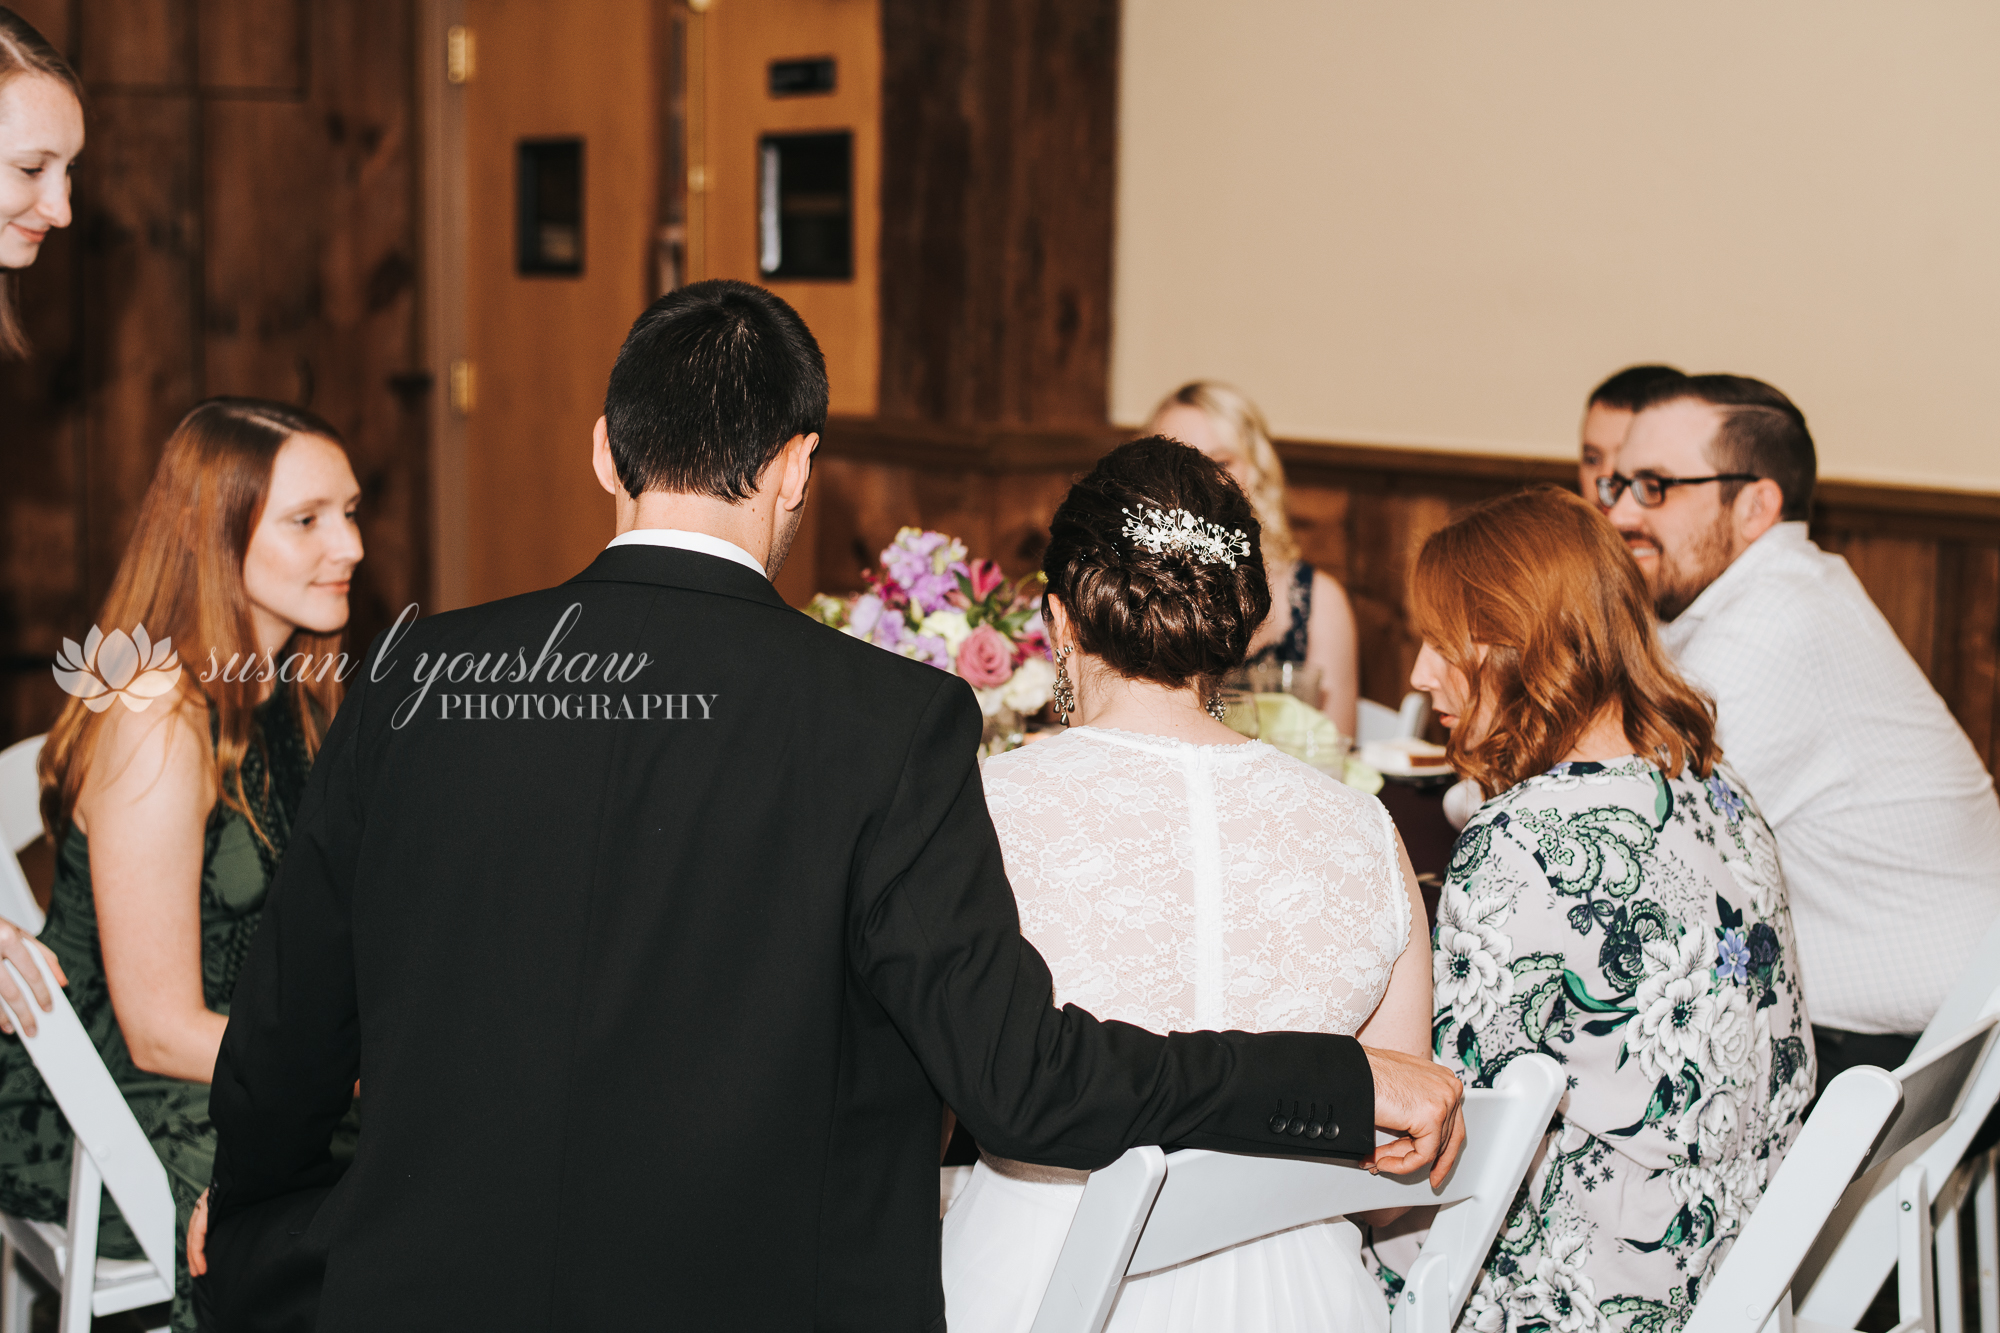 Adena and  Erik Wedding 05-17-2019 SLY Photography-110.jpg